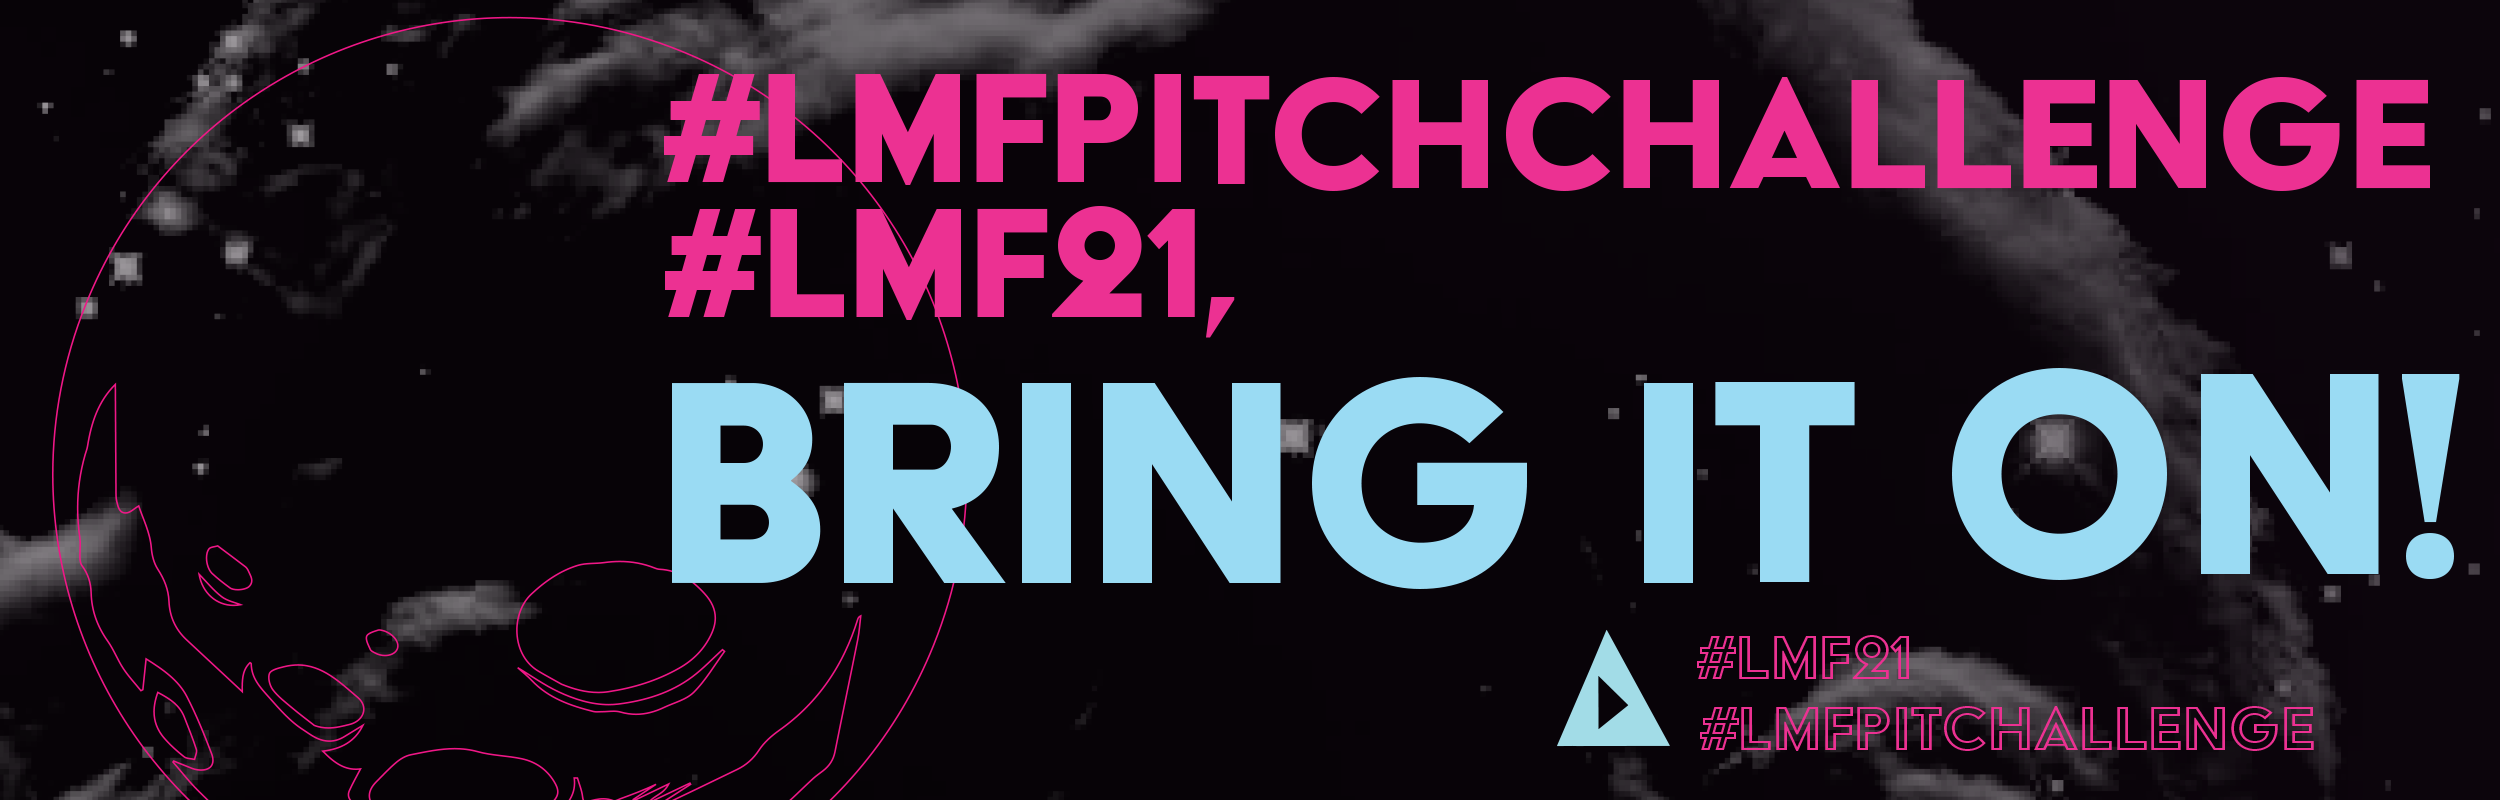 Submit to the #LMFPitchChallenge!<